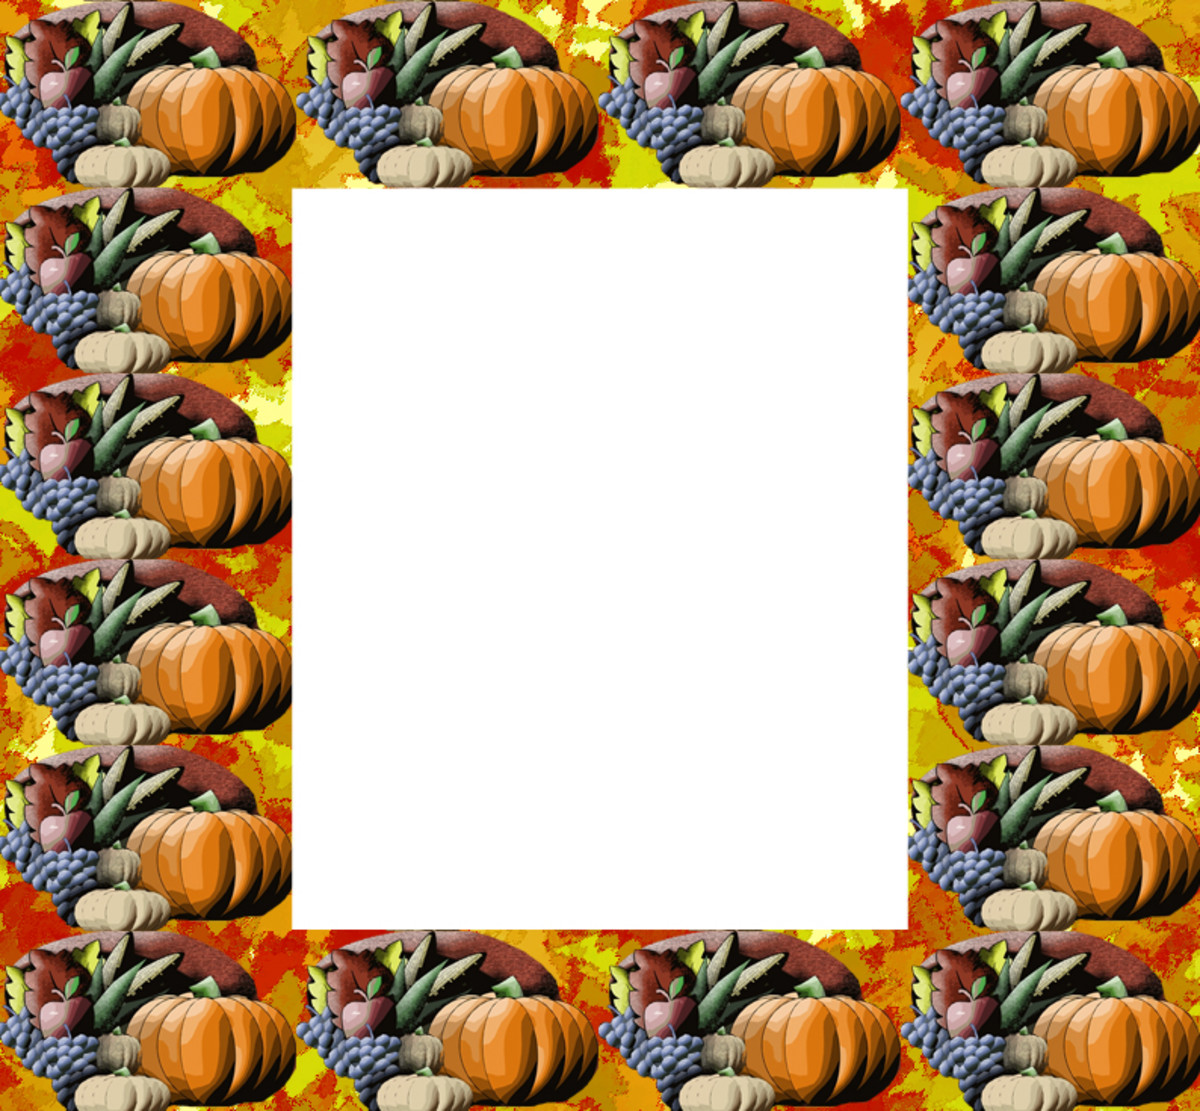 Thanksgiving cornucopia clip art frame